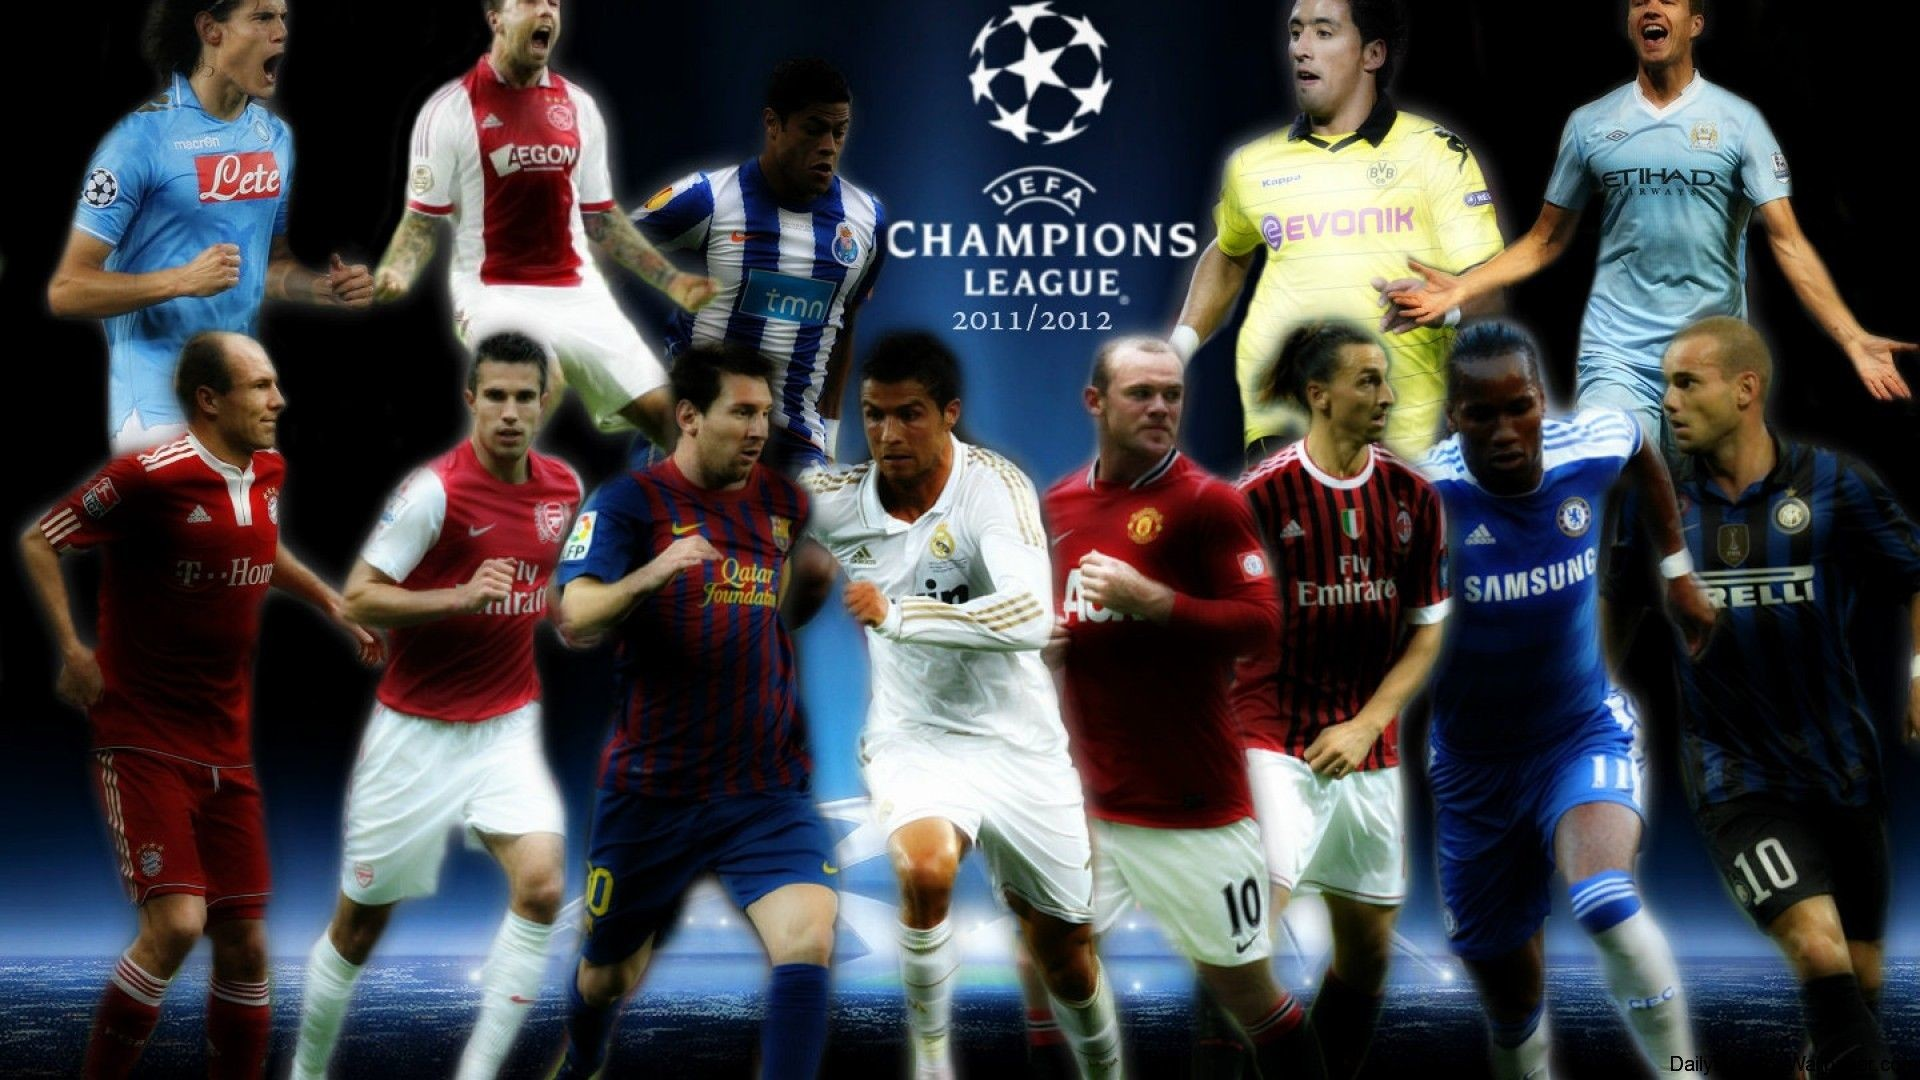 Res: 1920x1080, UEFA Champions League Wallpapers Best UEFA Champions League